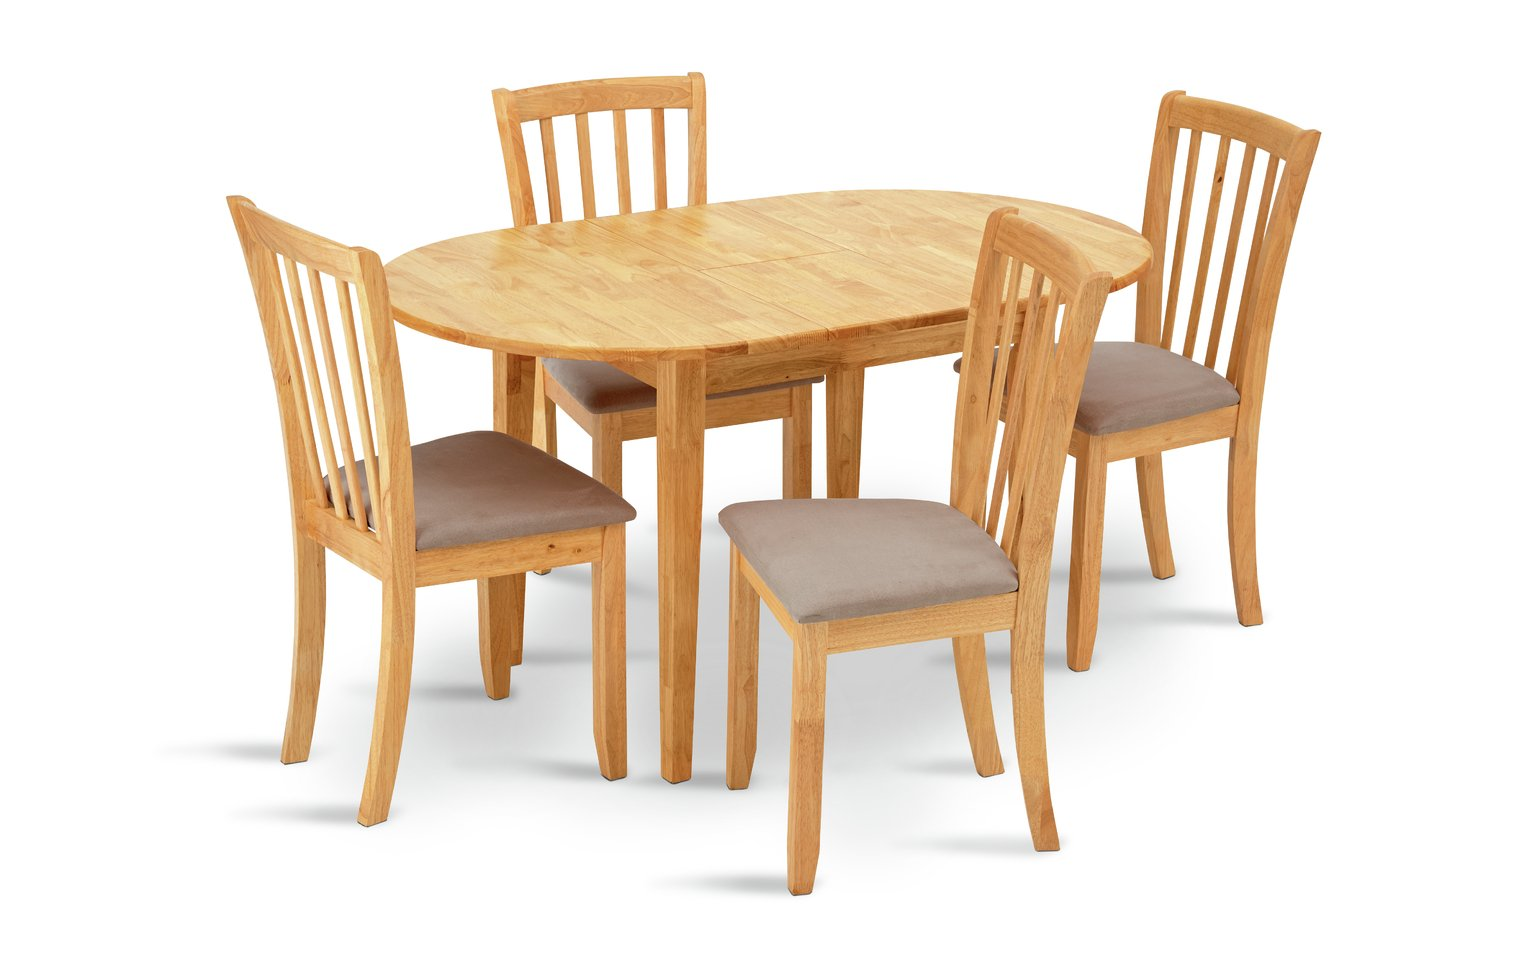 Versatile Kitchen Table And Chair Sets For Your Home: Buy Collection Banbury Extendable Table & 4 Chairs